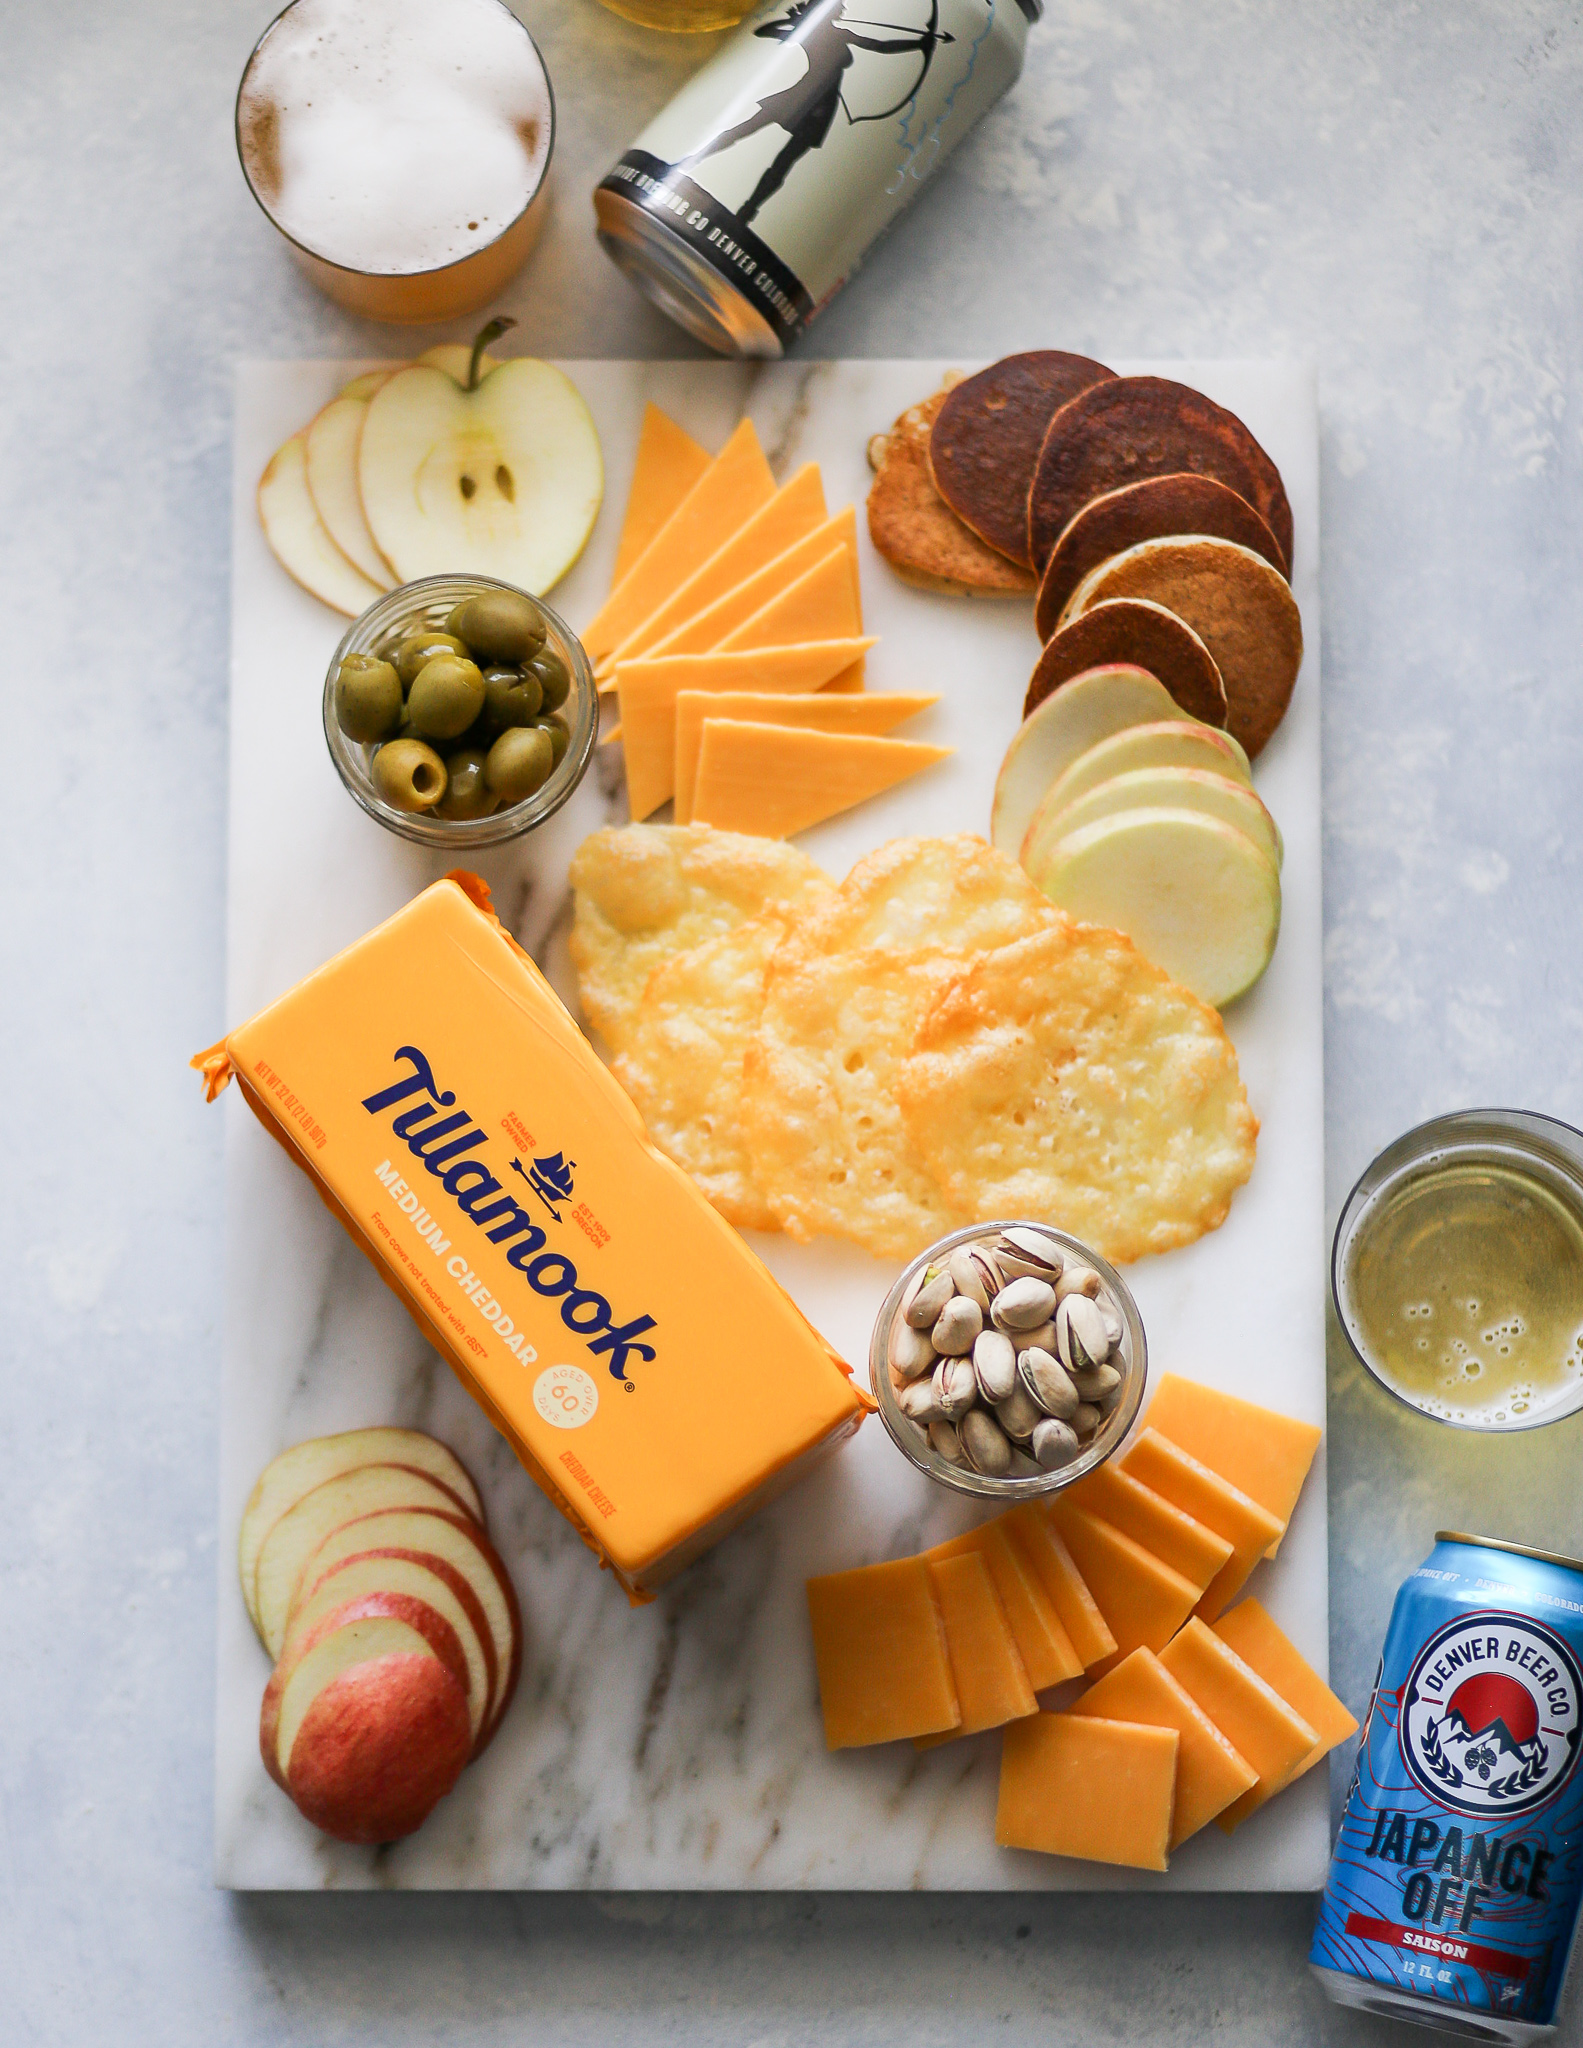 This post is sponsored by Tillamook, one of my favorite brands to support! Look for their cheese, ice cream, yogurt, and more at your    local grocery store   . You will NOT be sorry!